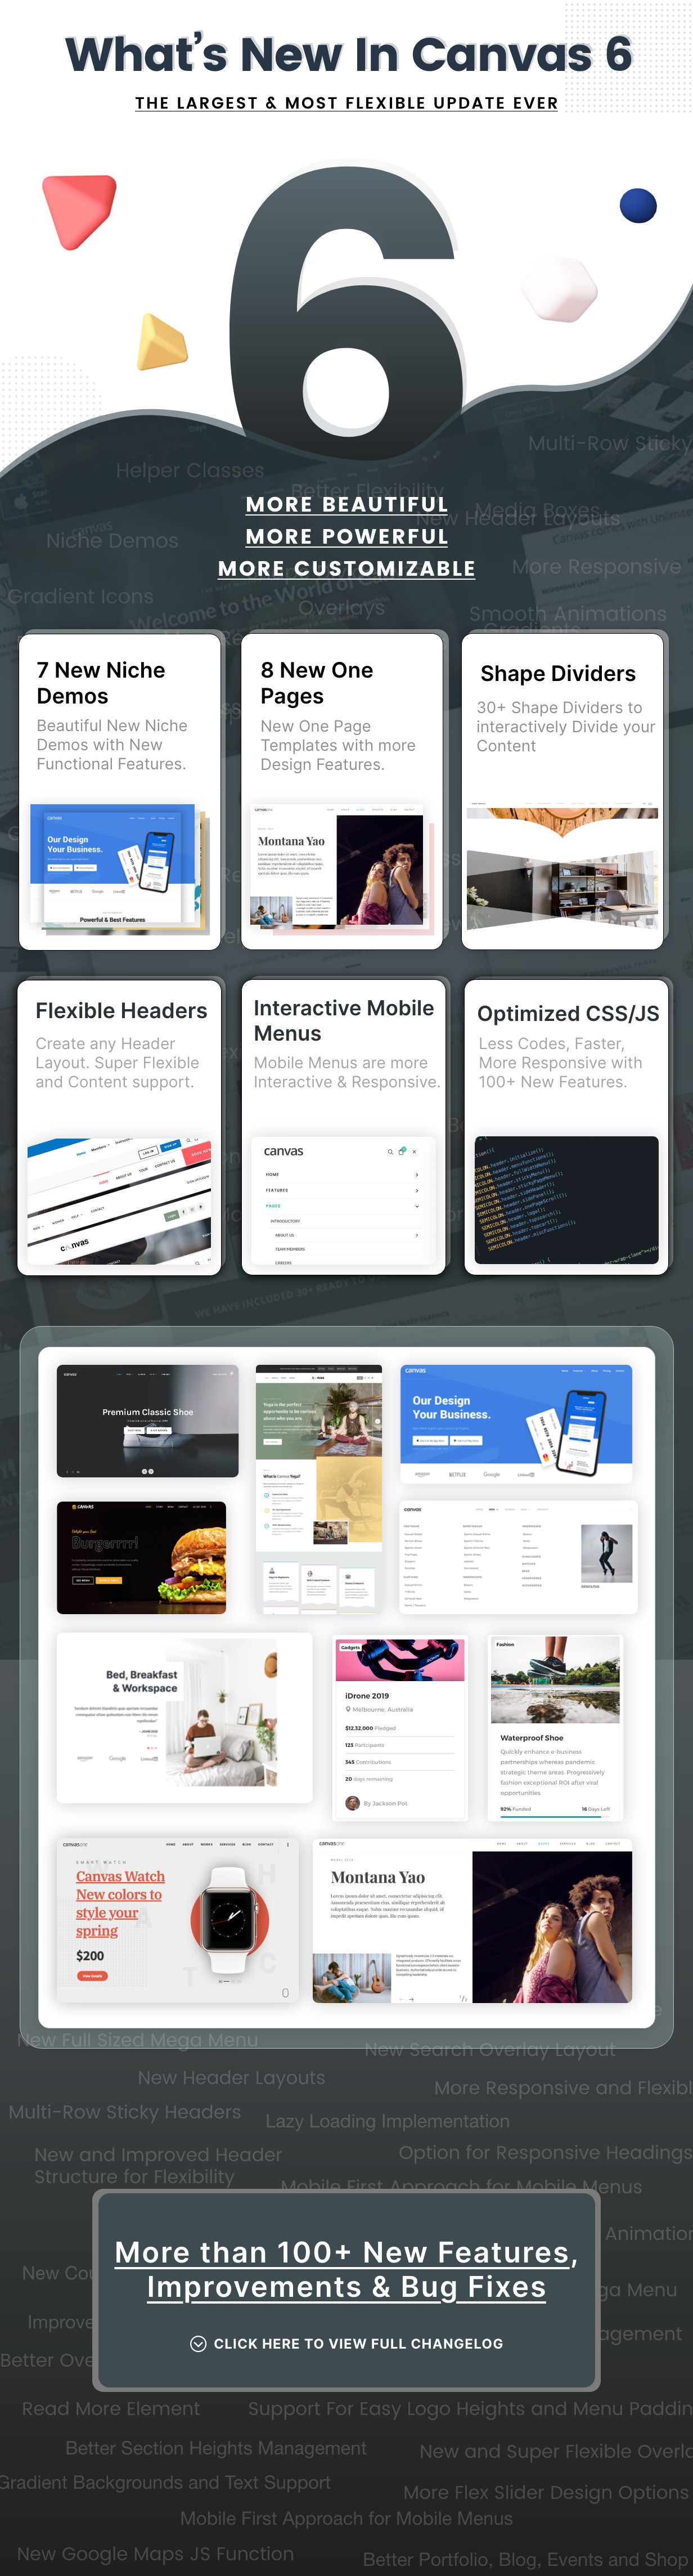 canvas v6 - Canvas | The Multi-Purpose HTML5 Template